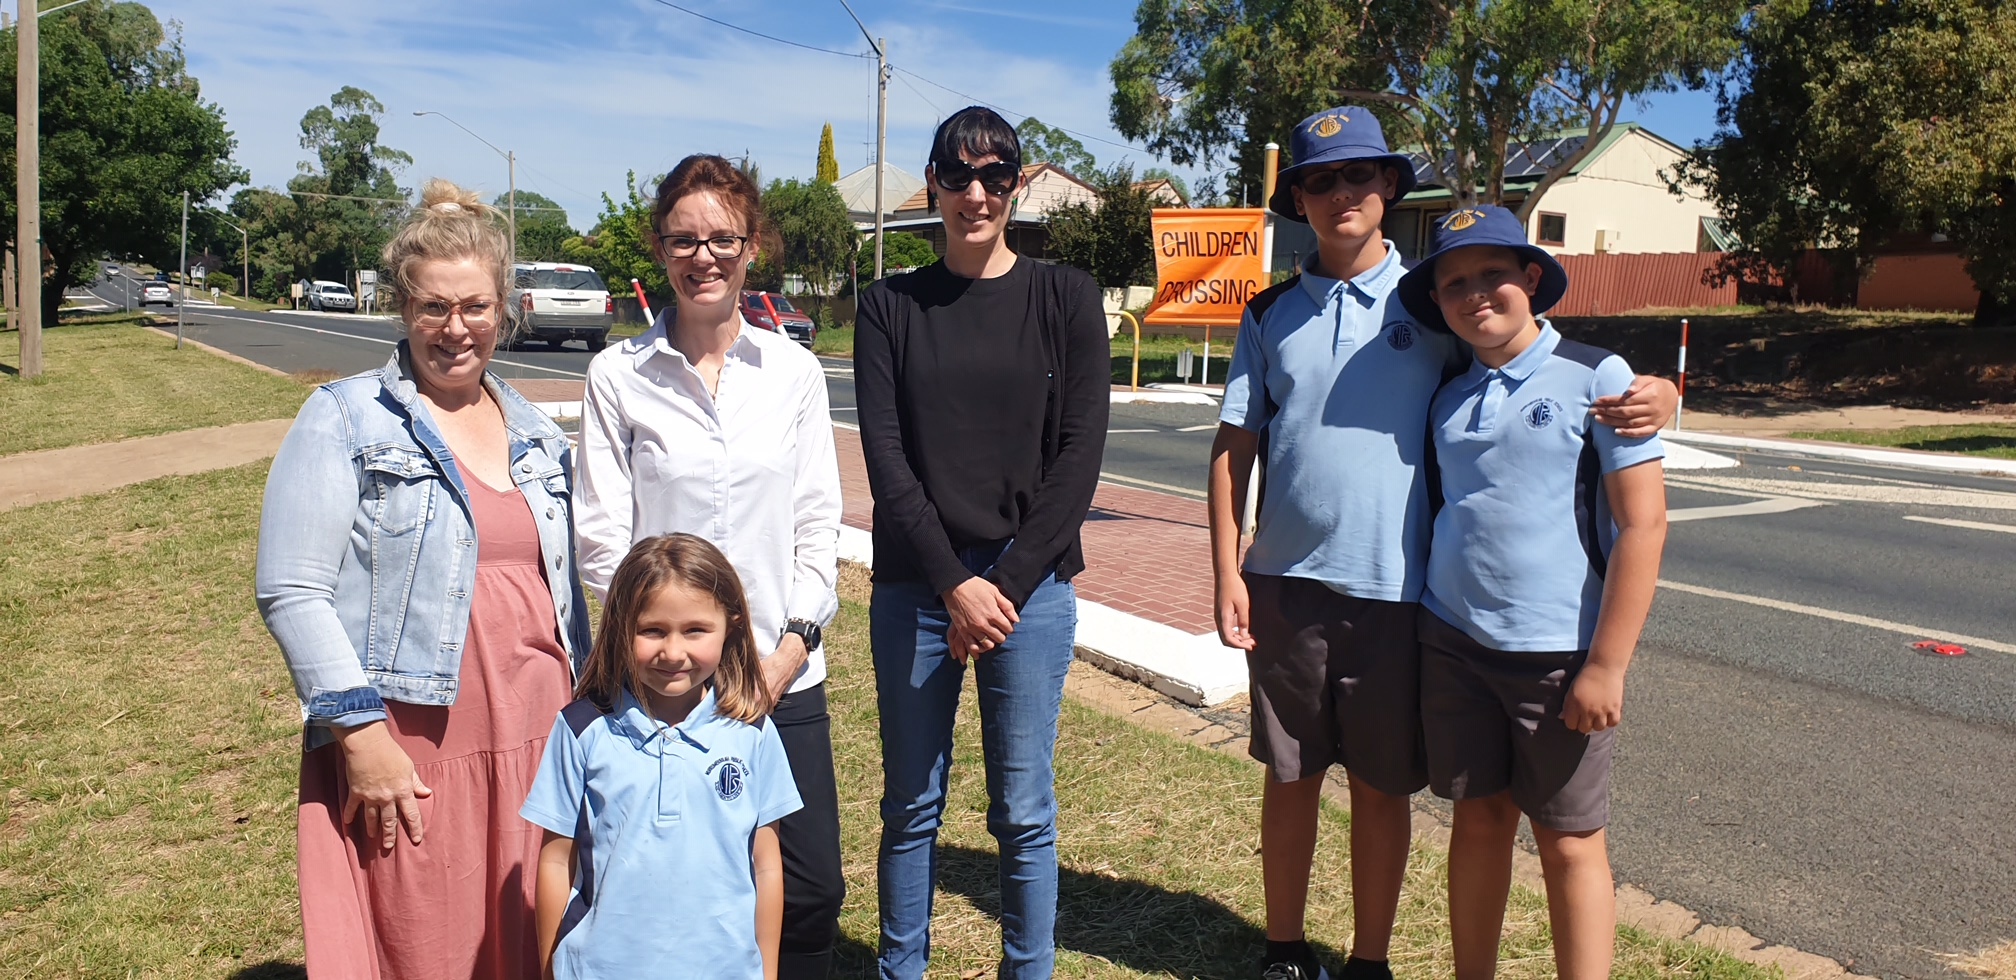 Renee Ford, Ana Djukic, Steph Cooke MP, Carrie Giddings, David and Marko Djukic stand in front of a school crossing.